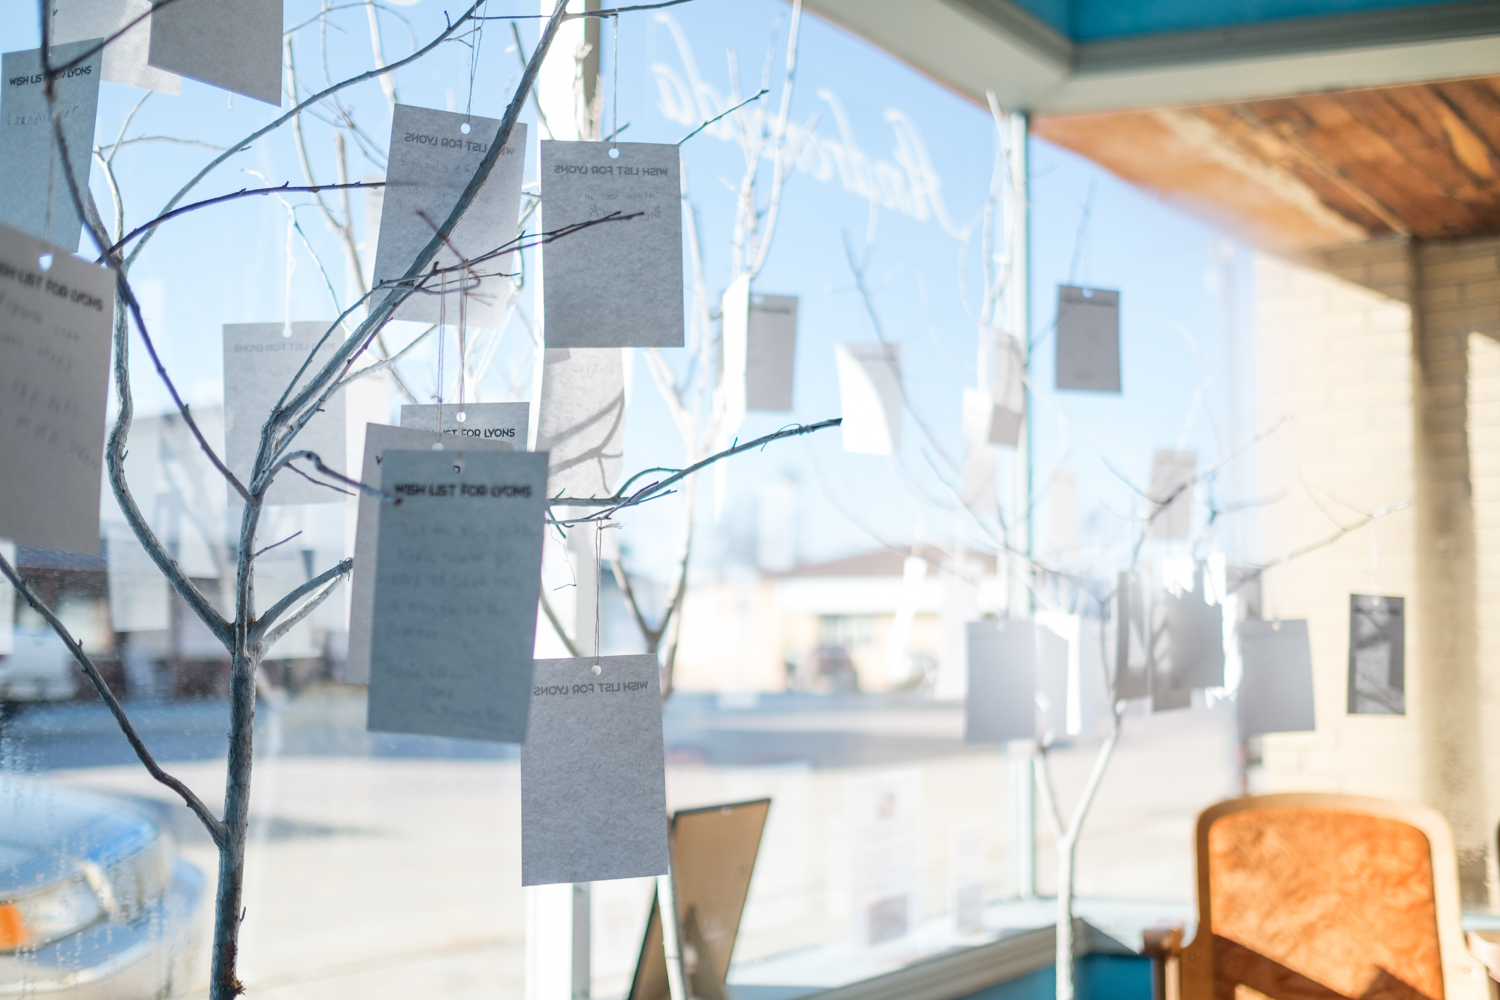 Wish lists made by Lyons citizens hang on display in the Andromeda Gallery storefront on Main Street.